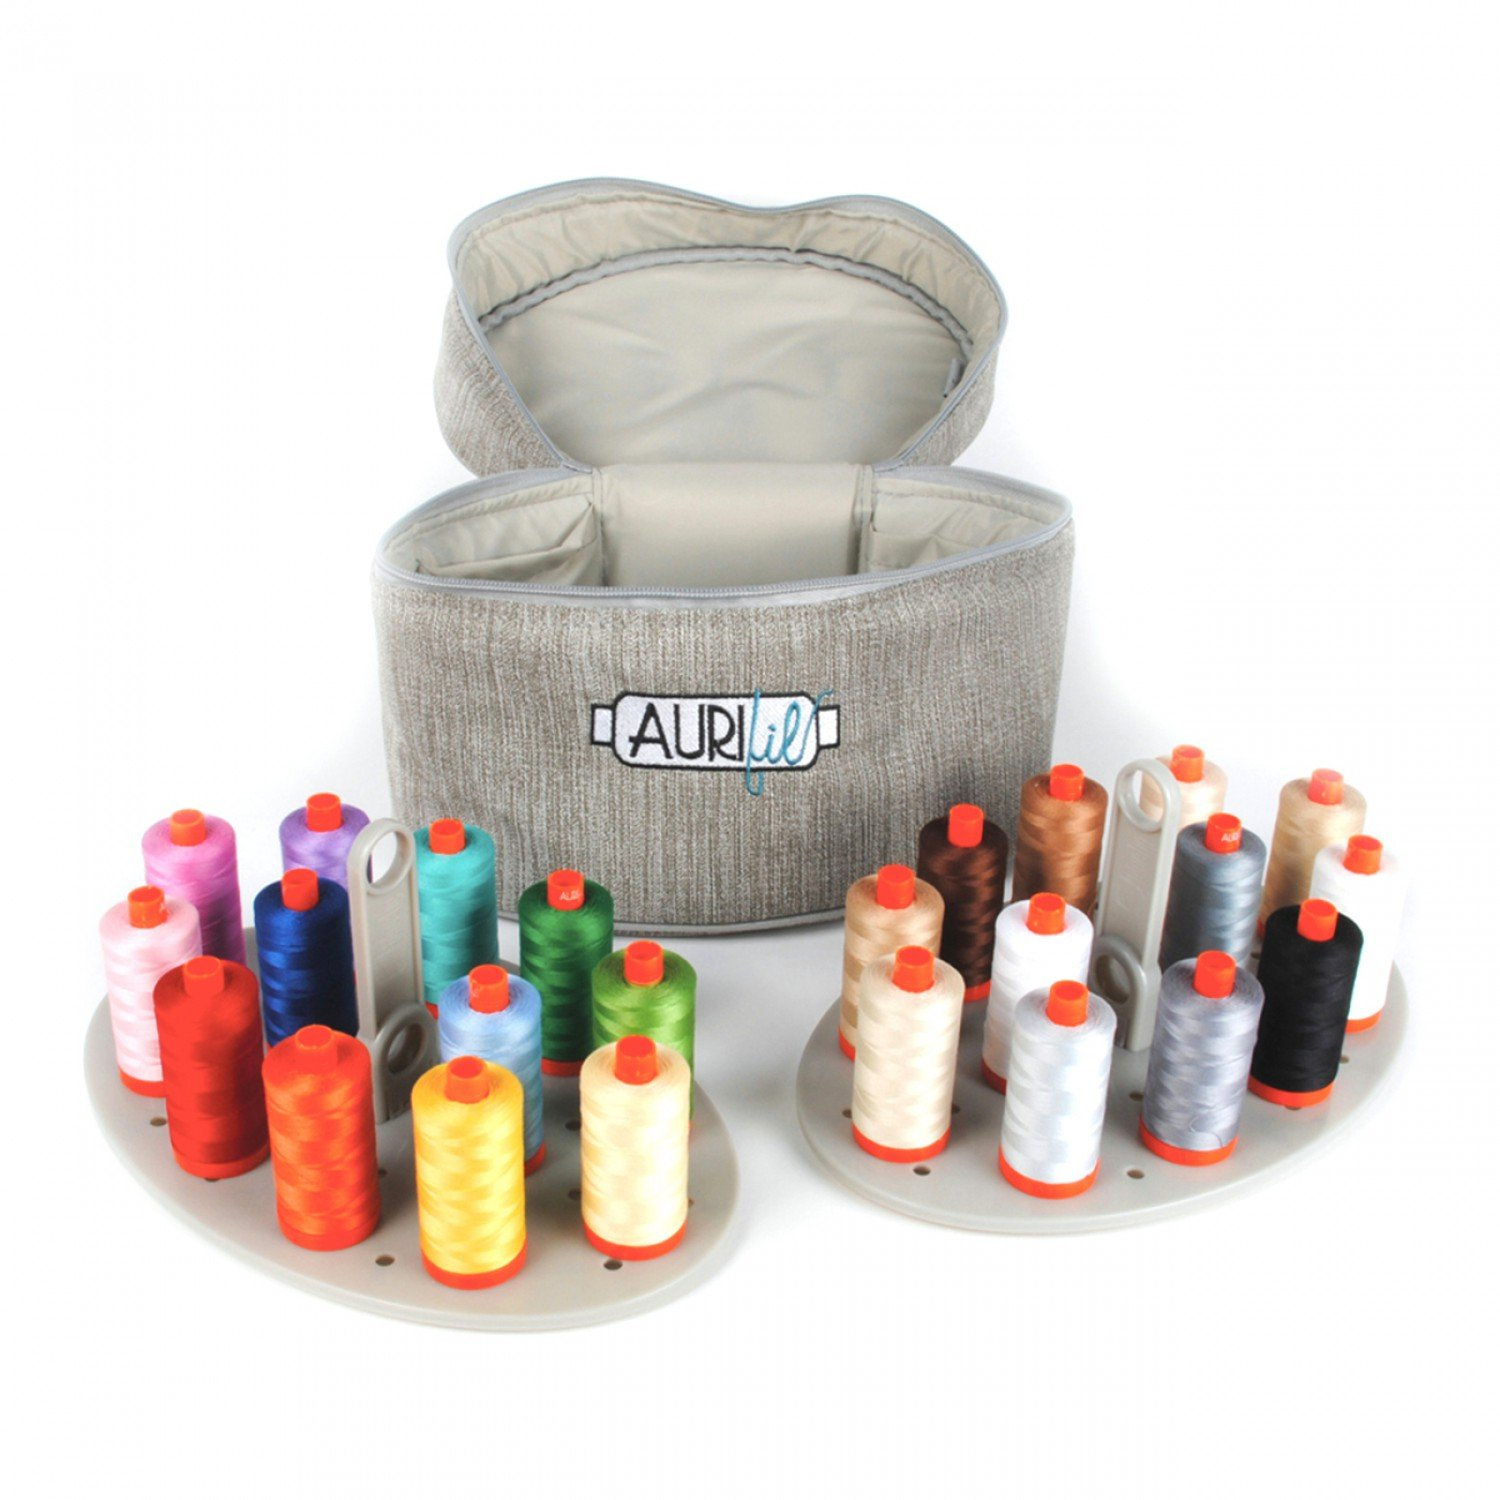 Aurifil Train Case with 24 Large 50wt. Spools